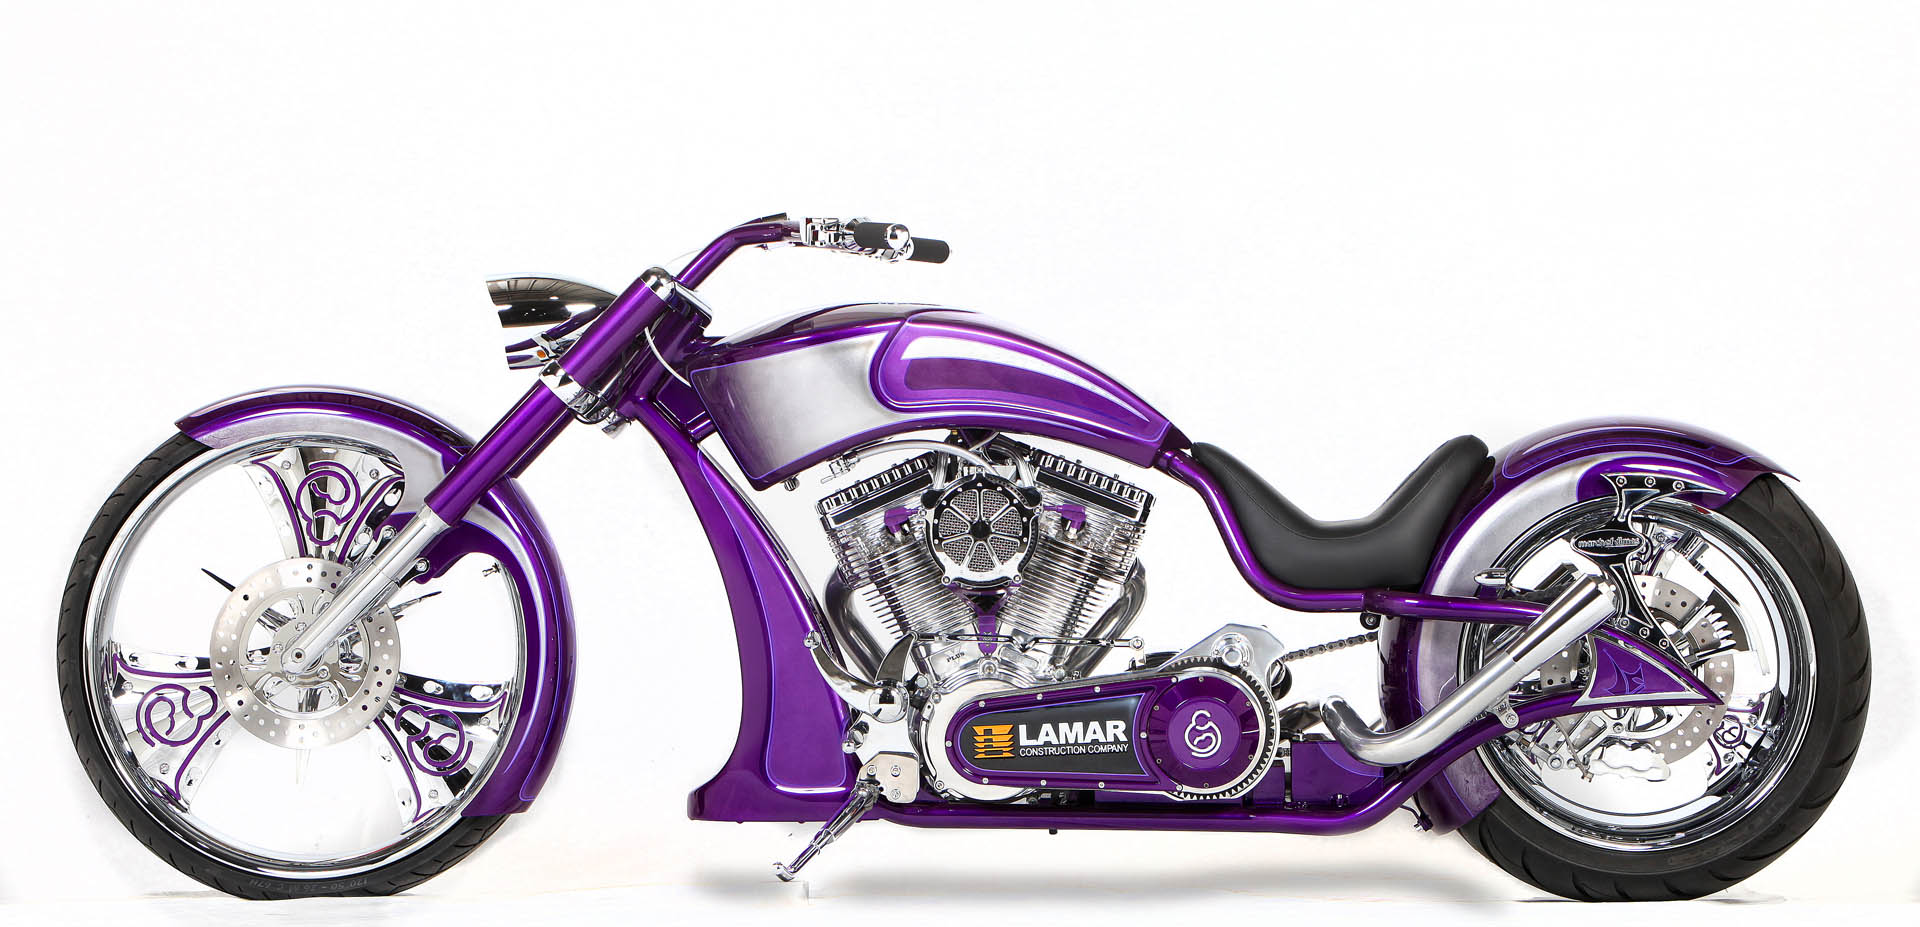 paul-jr-designs-march-of-dimes-bike-019